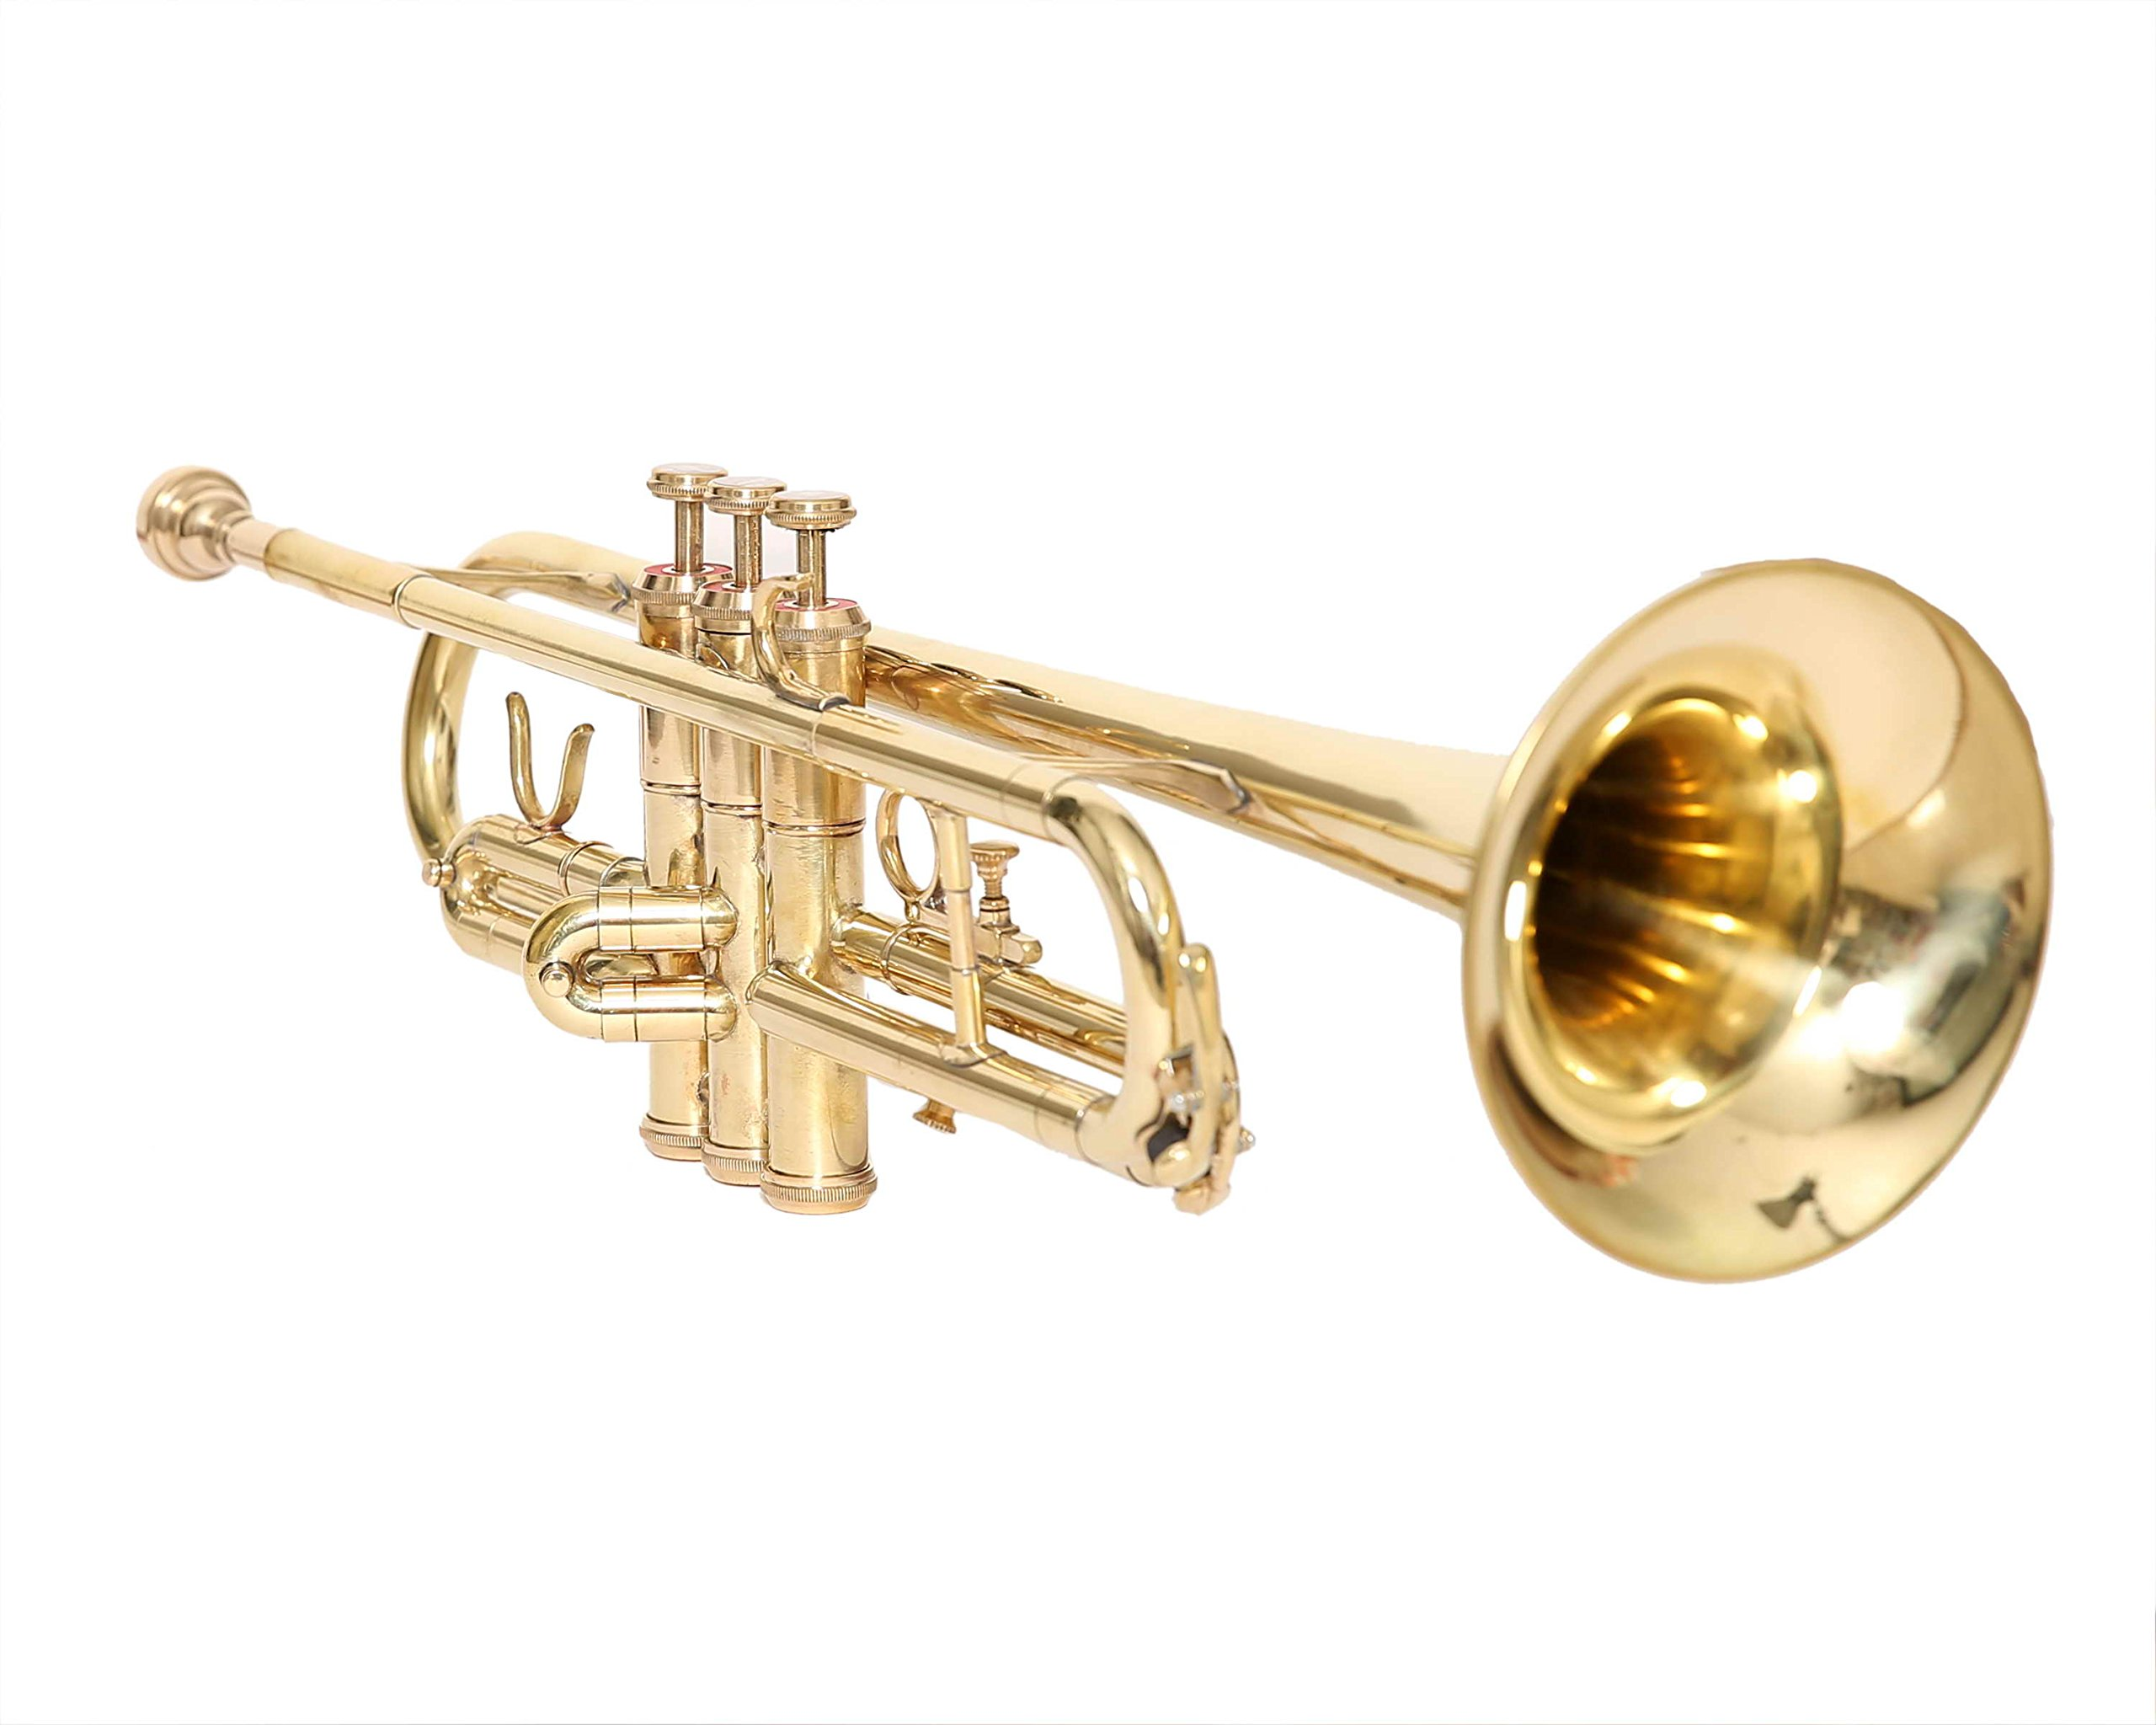 NASIR ALI TRUMPET Bb PITCH FOR SALE BRASS GOLD LOOK WITH FREE CASE AND MOUTHPIECE